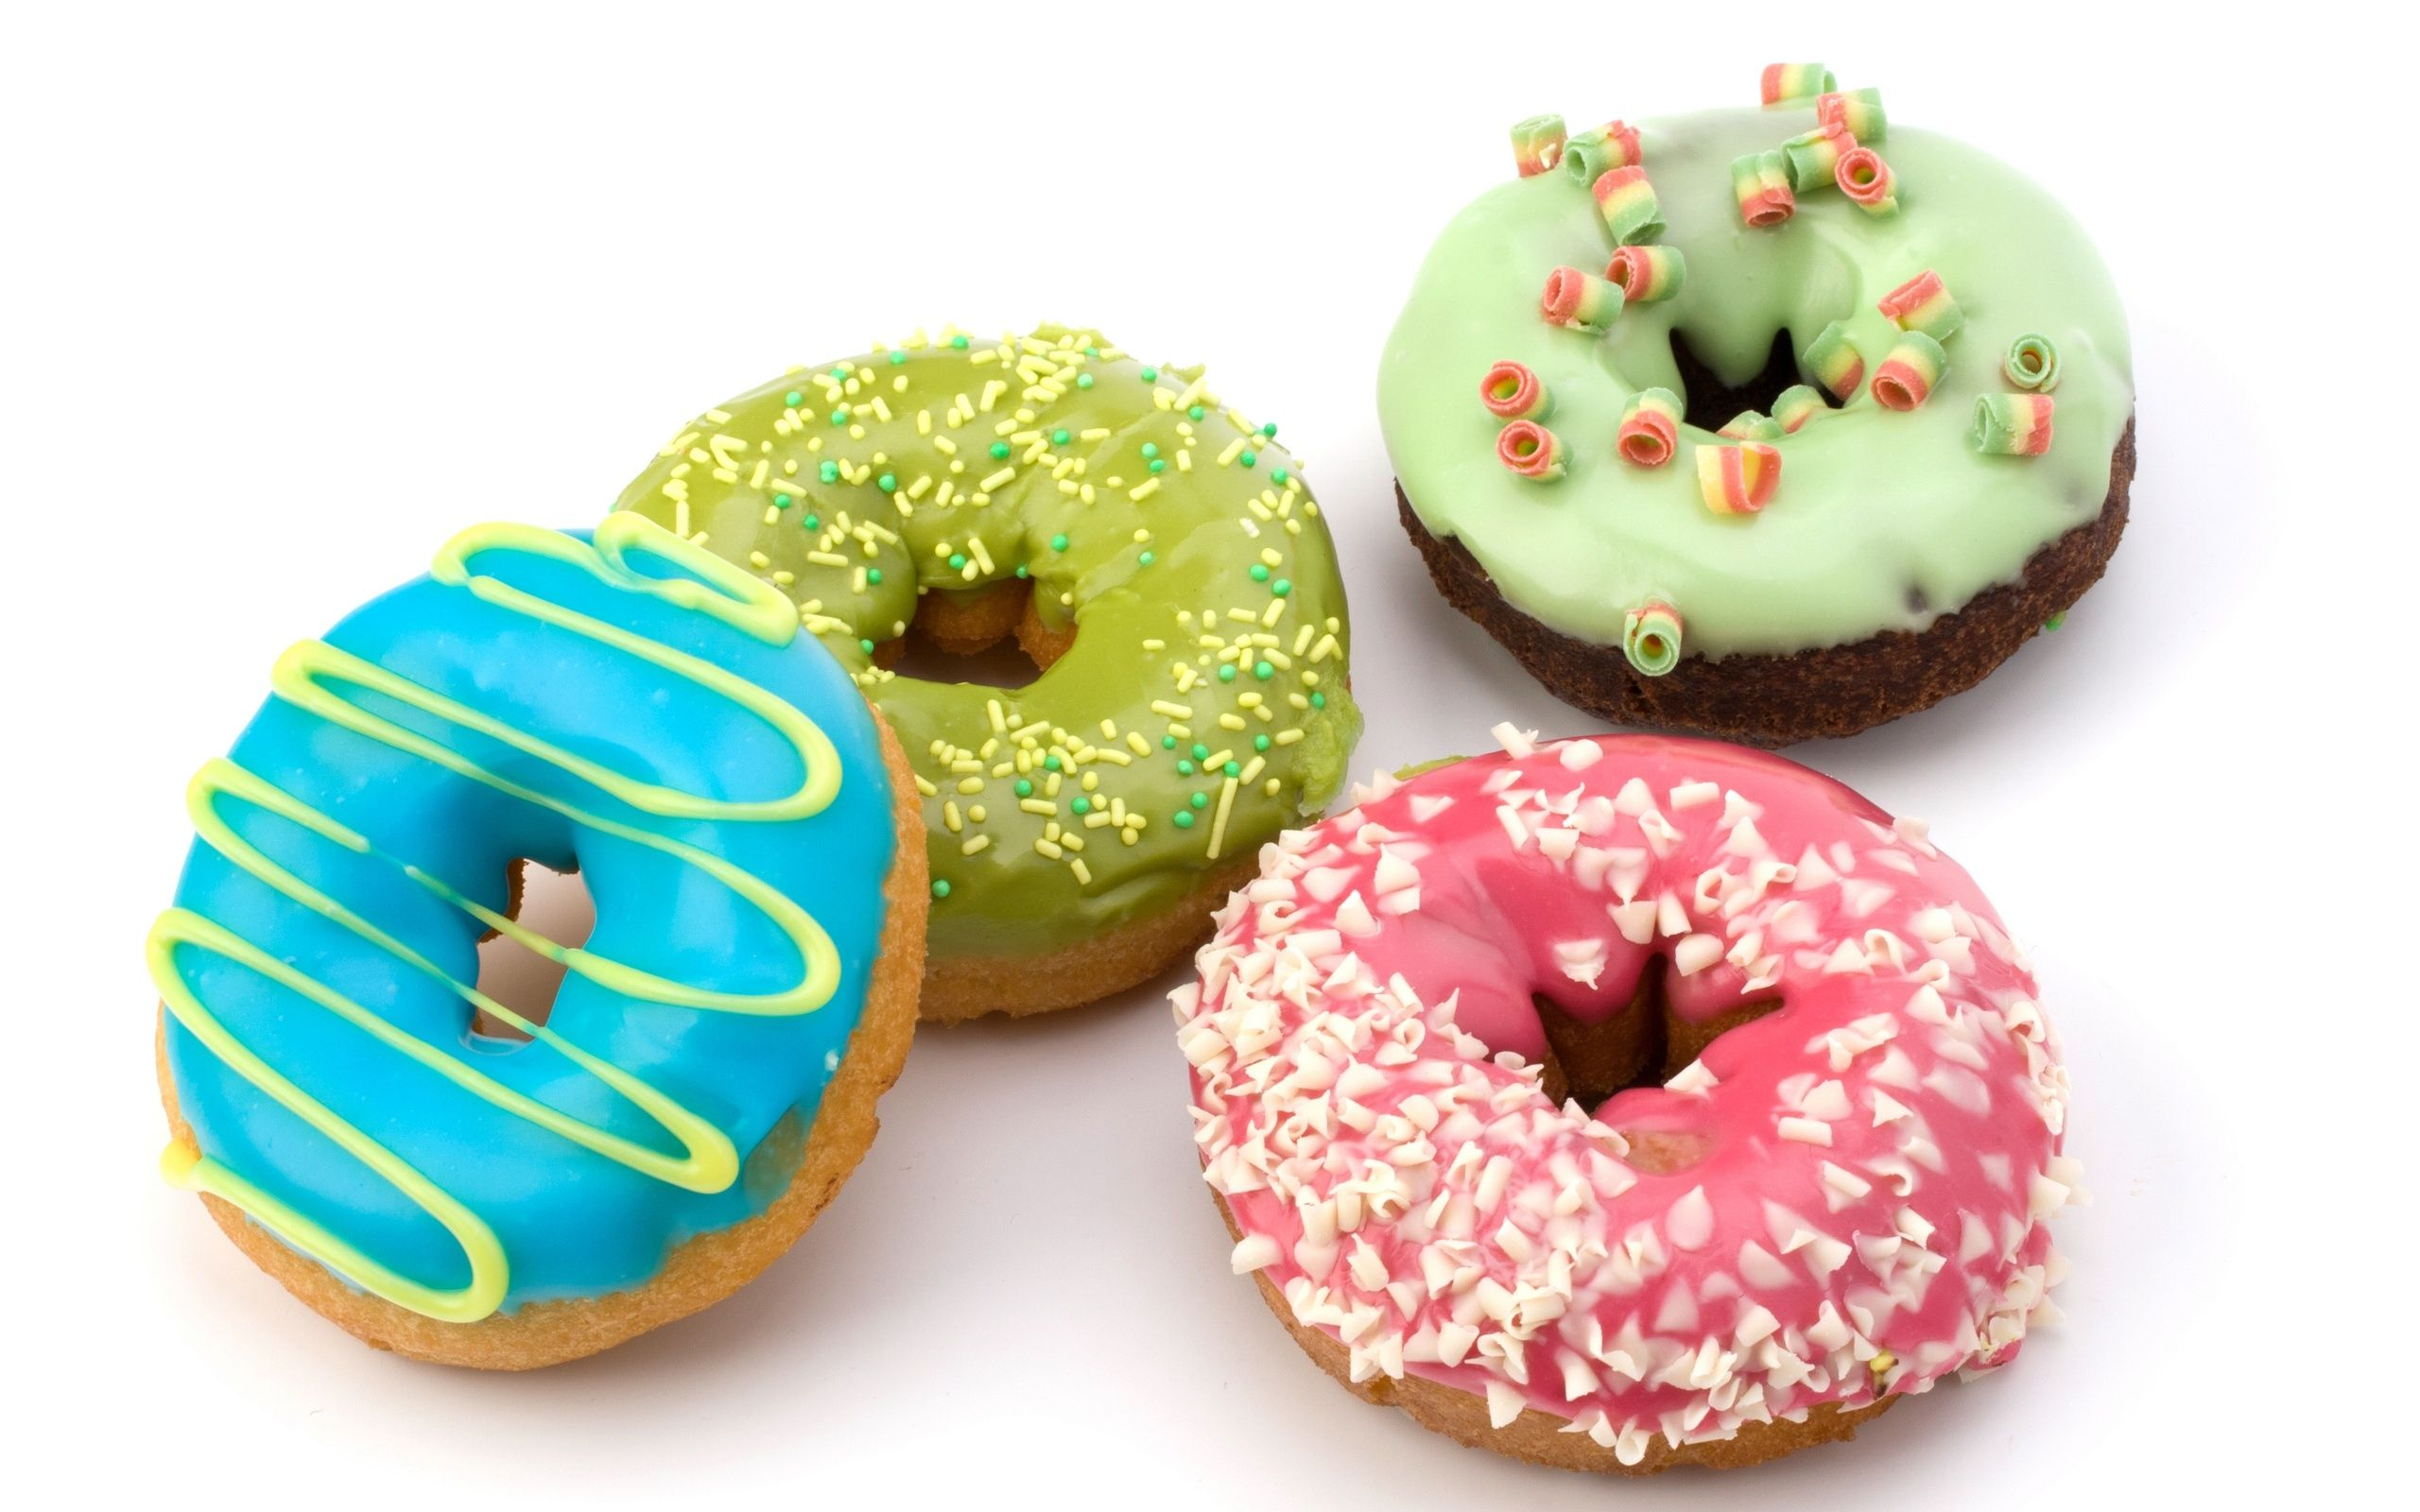 2560x1600 75 Doughnut HD Wallpapers | Background Images - Wallpaper Abyss